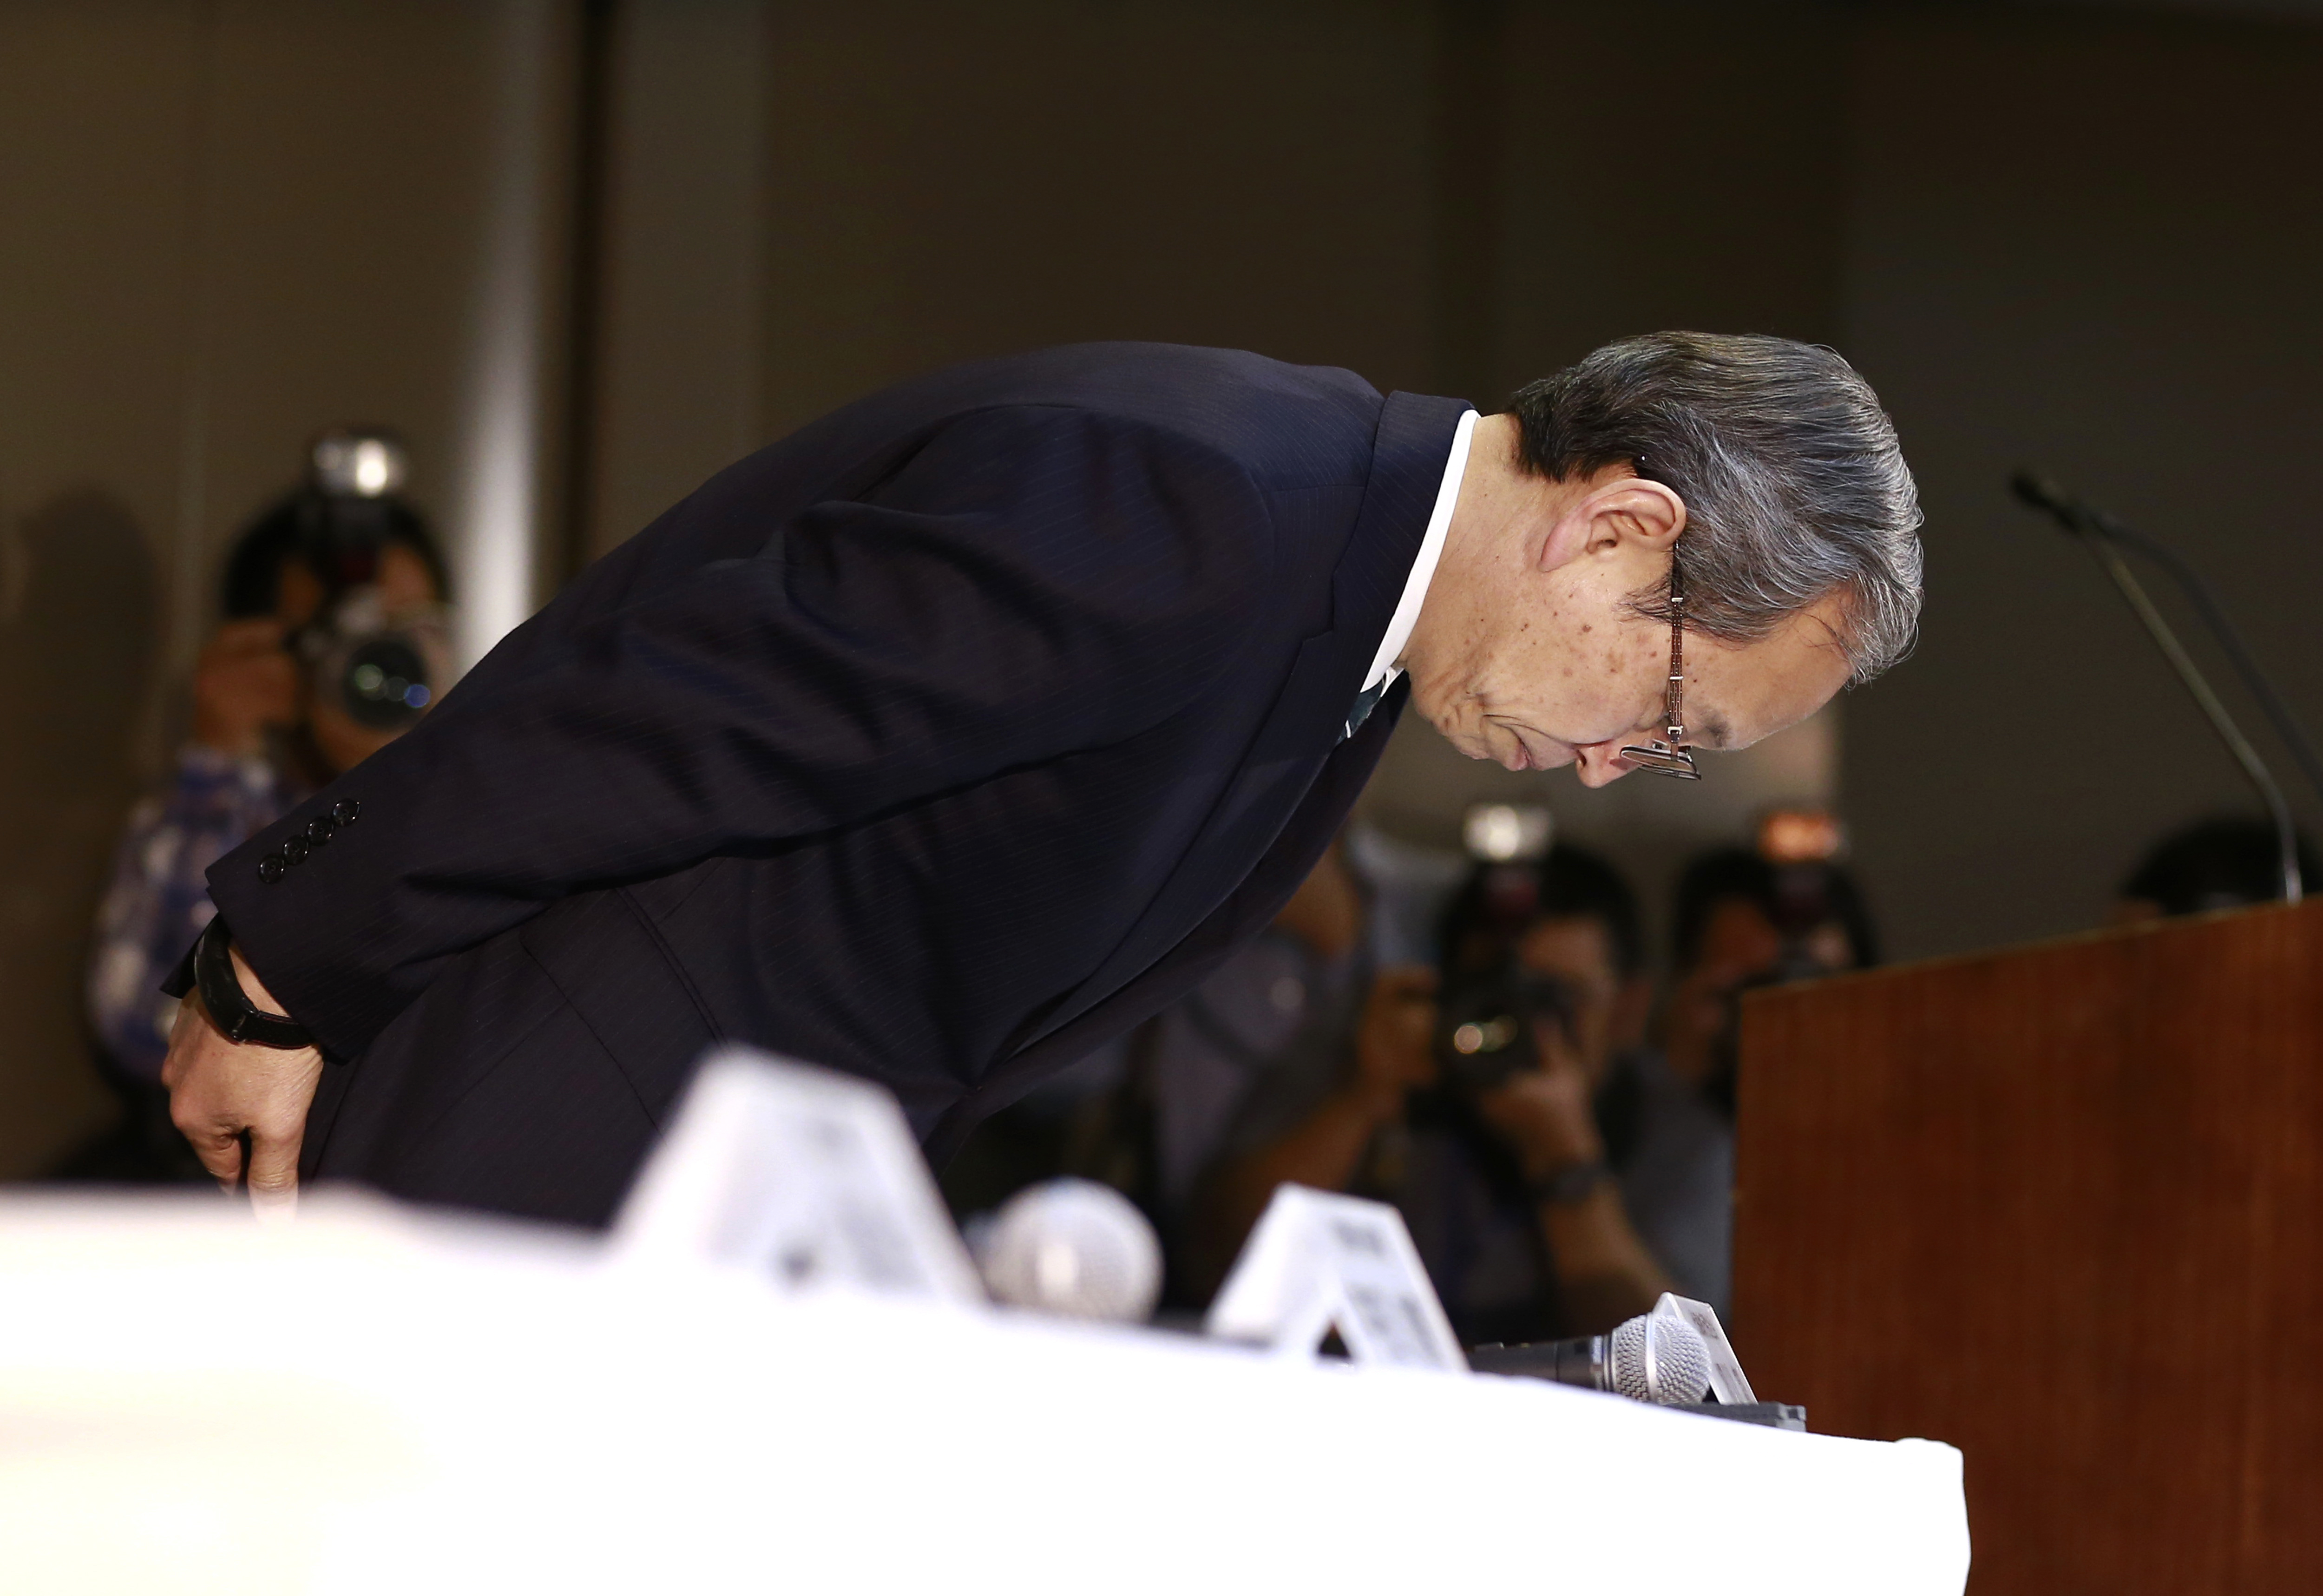 Japan Toshiba Westinghouse-1 Toshiba Corp. President Satoshi Tsunakawa bows during a press conference at the company's headquarters in Tokyo, Wednesday, March 29, 2017. Japan's embattled Toshiba said Wednesday that its U.S. nuclear unit Westinghouse Electric Co. has filed for bankruptcy protection. Toshiba said in a statement that it filed the chapter 11 petition in the U.S. Bankruptcy Court of New York. (AP Photo/Shizuo Kambayashi)